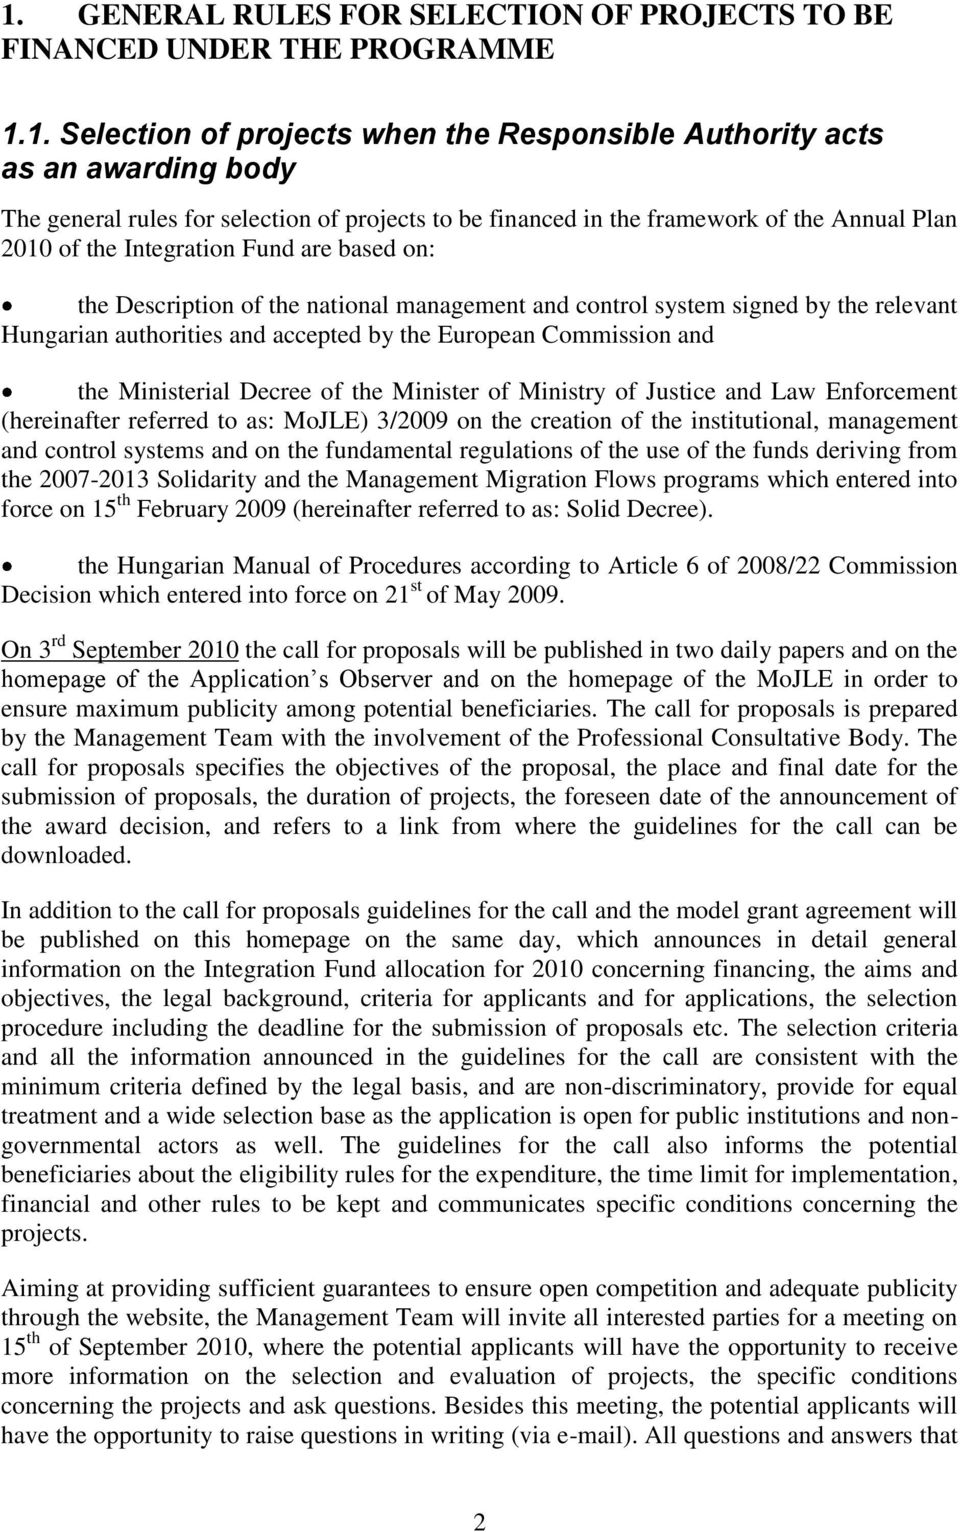 authorities and accepted by the European Commission and the Ministerial Decree of the Minister of Ministry of Justice and Law Enforcement (hereinafter referred to as: MoJLE) 3/2009 on the creation of